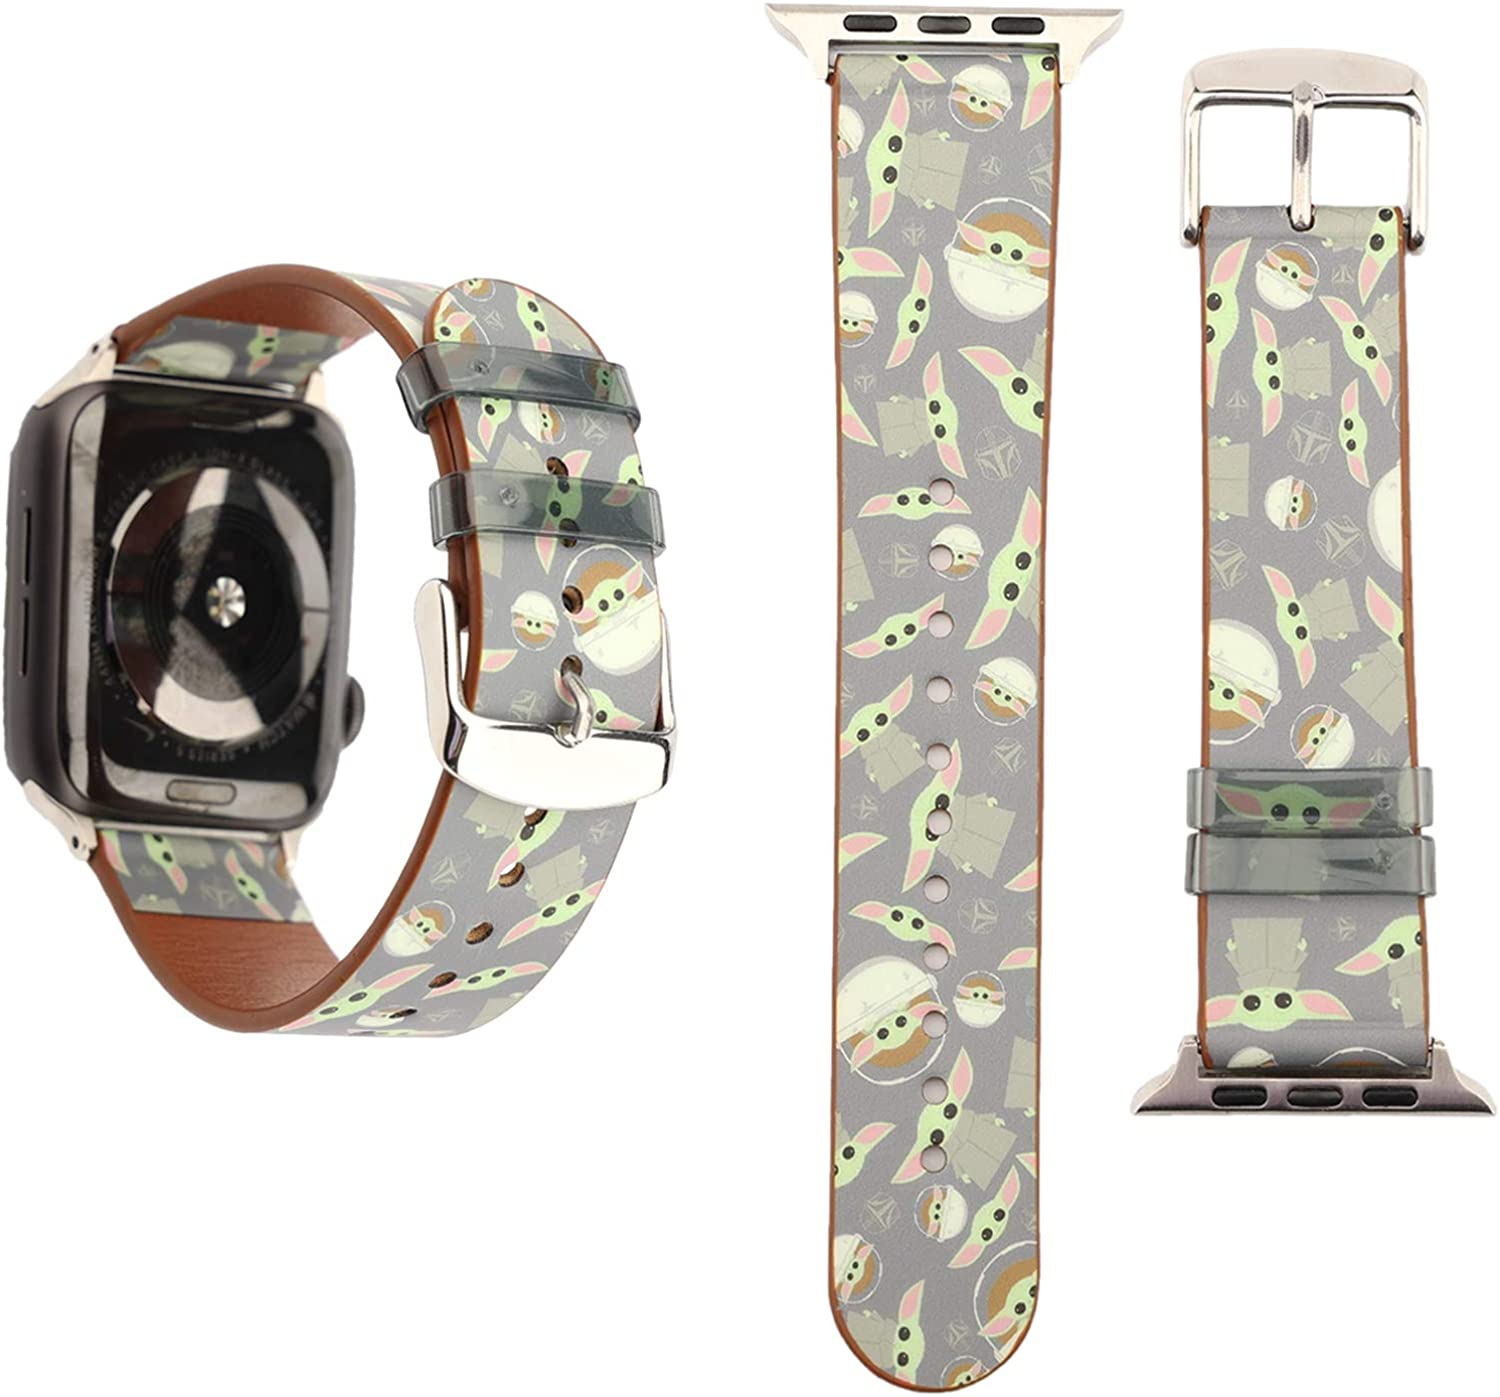 YSNUO Cute Compatible with Apple iWatch Band 38mm 40mm/42mm 44mm, Soft Leather Watch Band Replacement Strap Women Men for iWatch 6 SE Series 5 4 3 2 1 + Silver Adapter